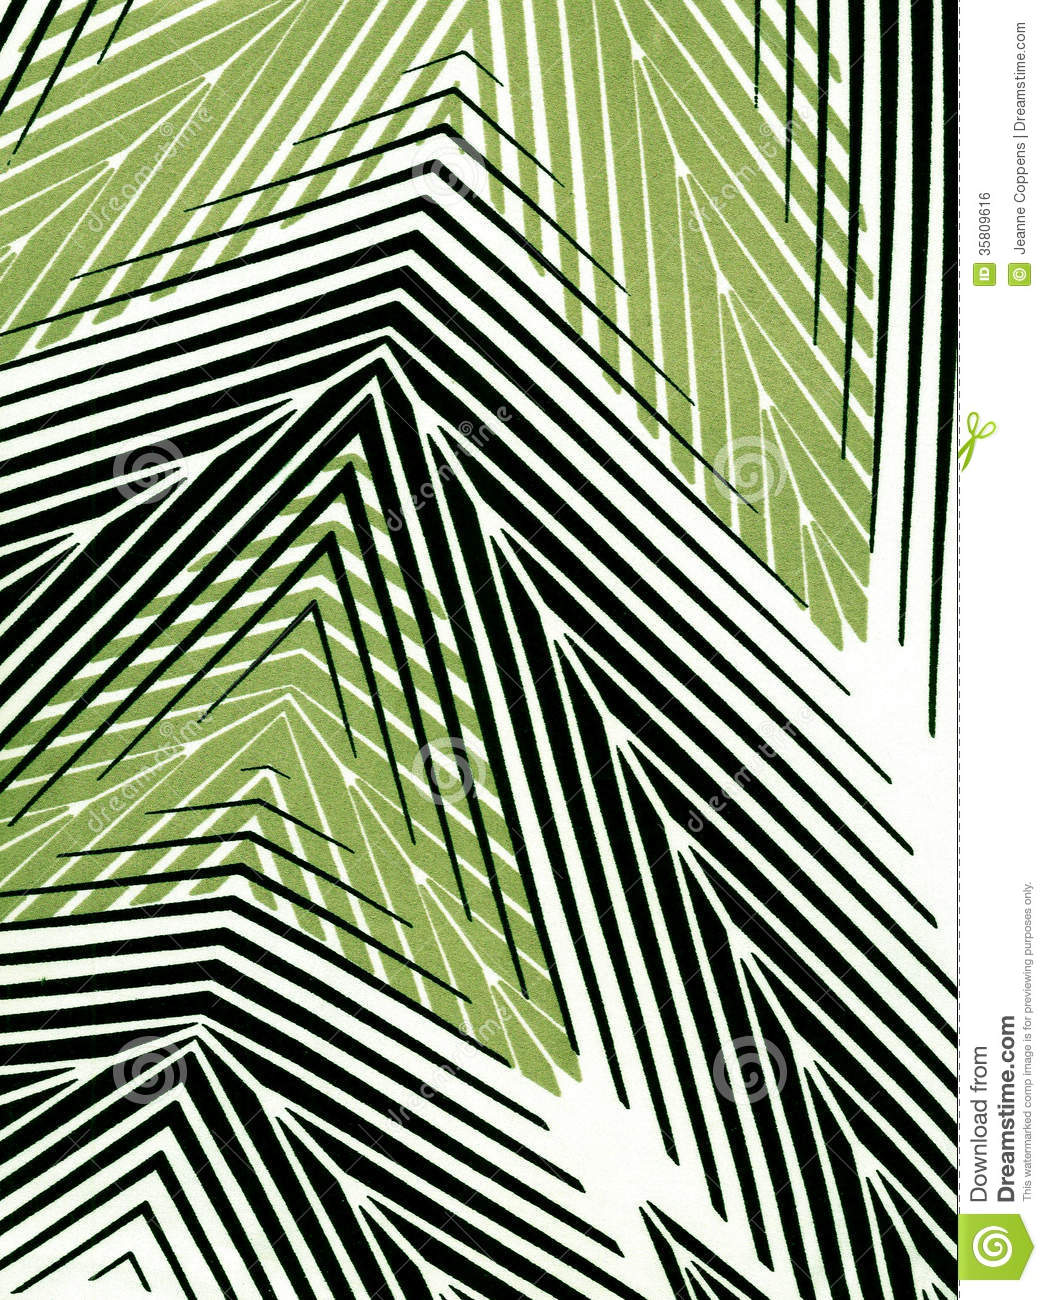 Textile Striped Wallpaper Stock Photo Image Of Op Abstract